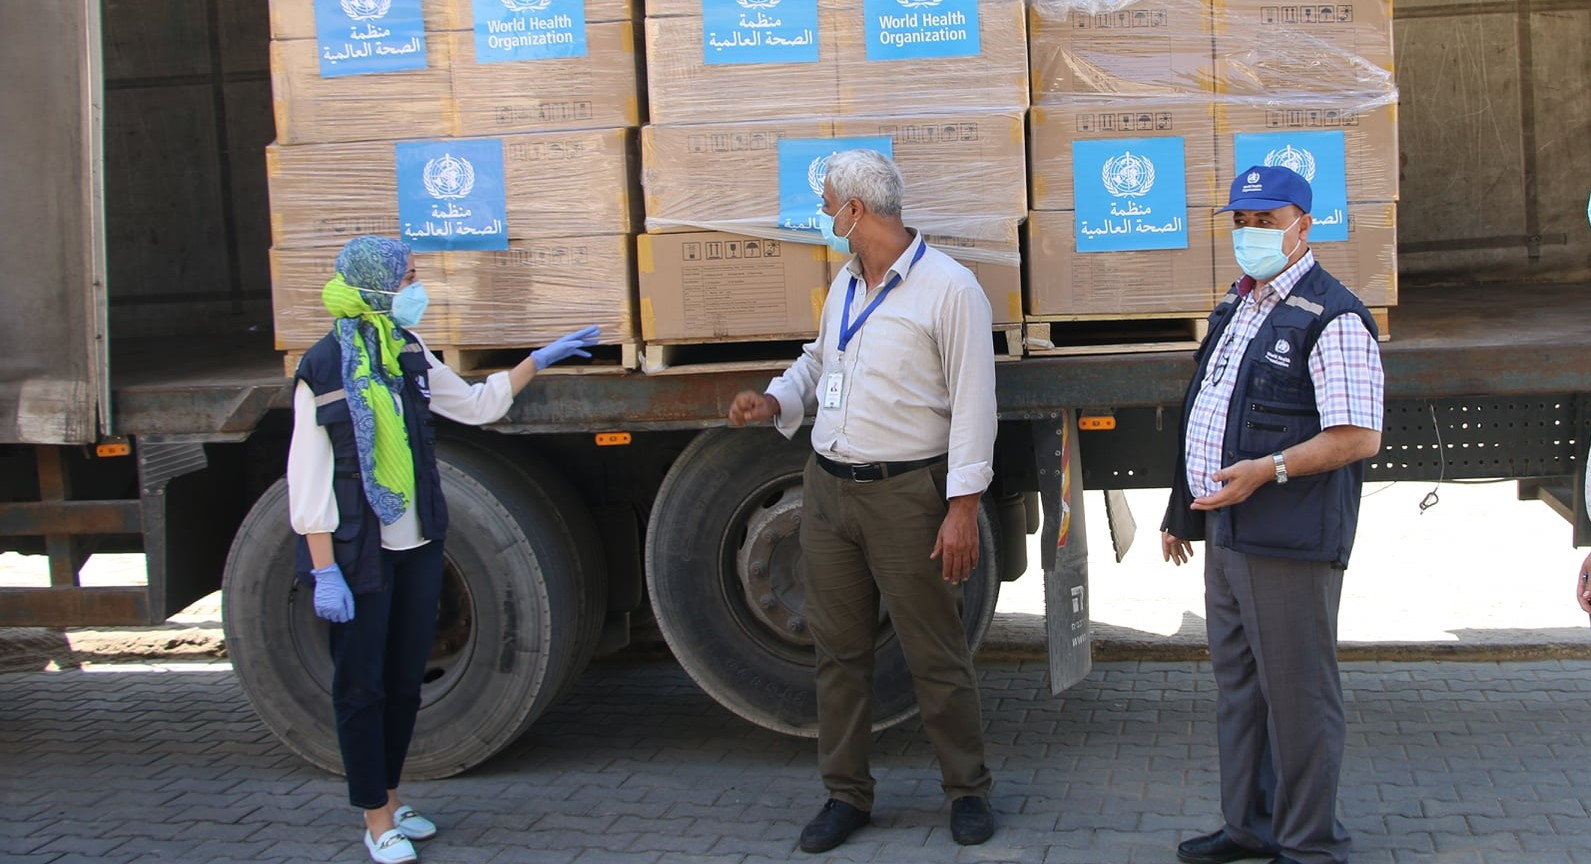 World Health Organization humanitarian aid to the Occupied Palestinian Territories